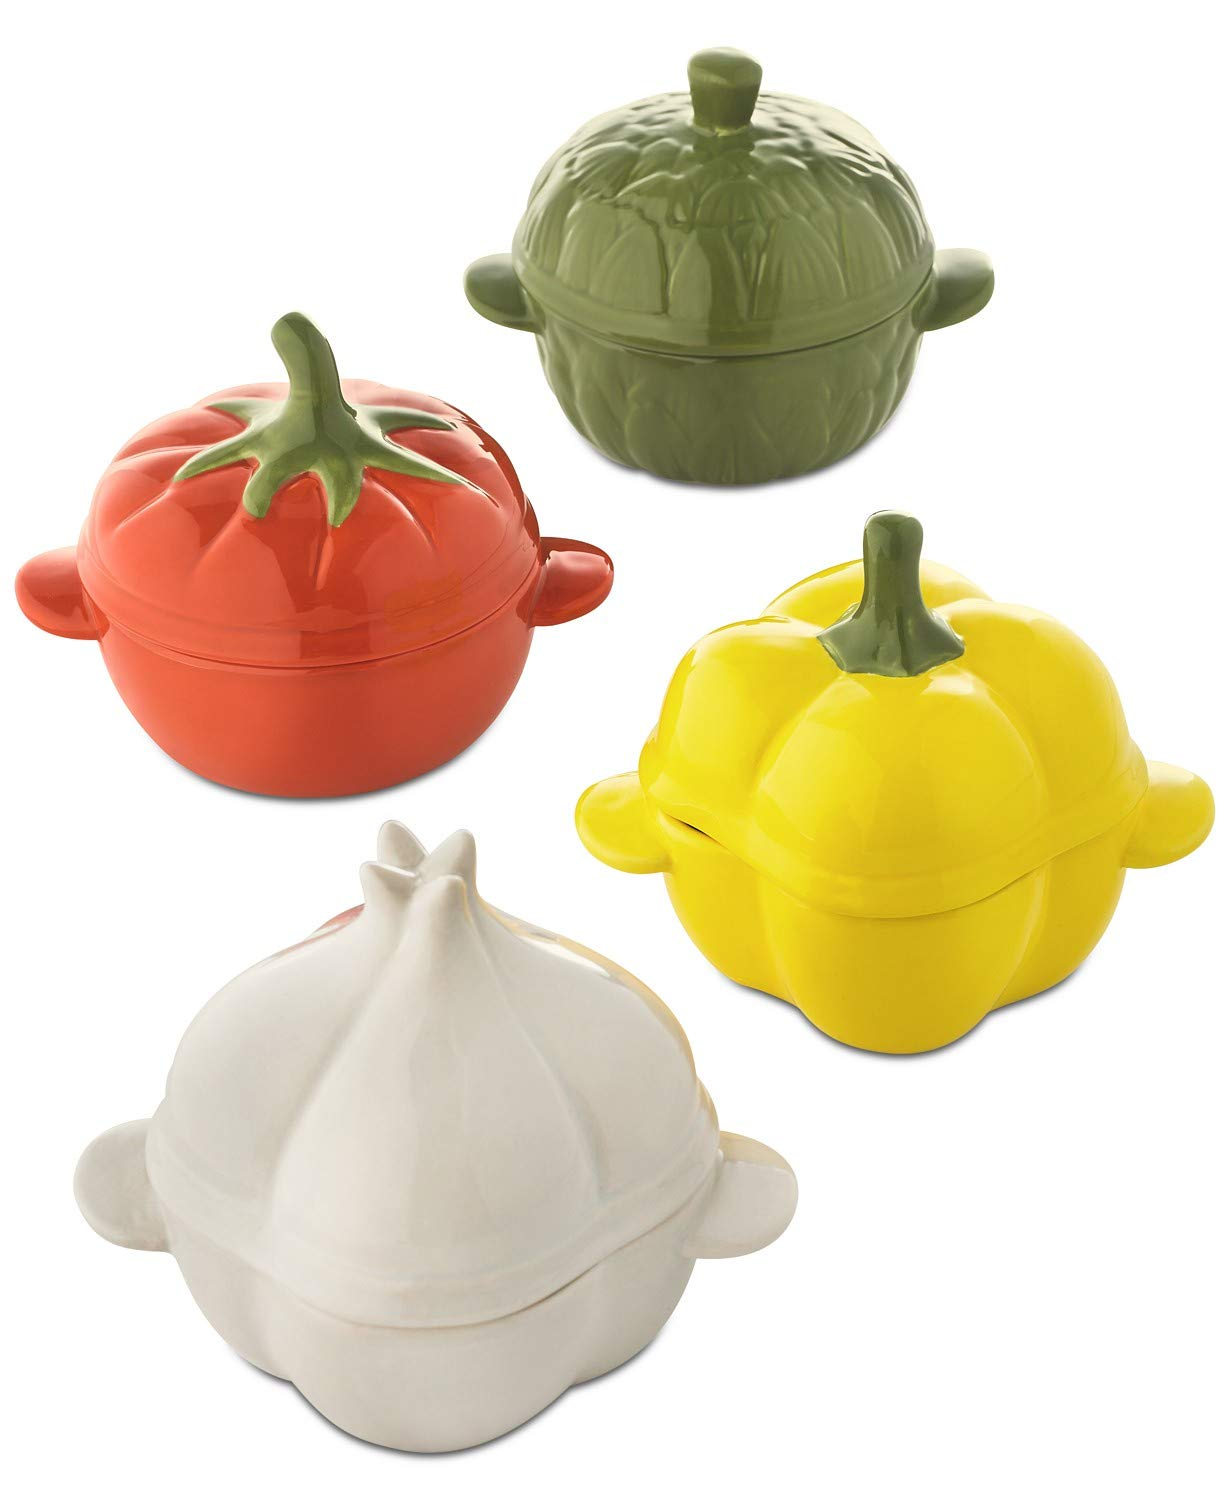 4-Pc. Ceramic Pumpkin Cocotte Set